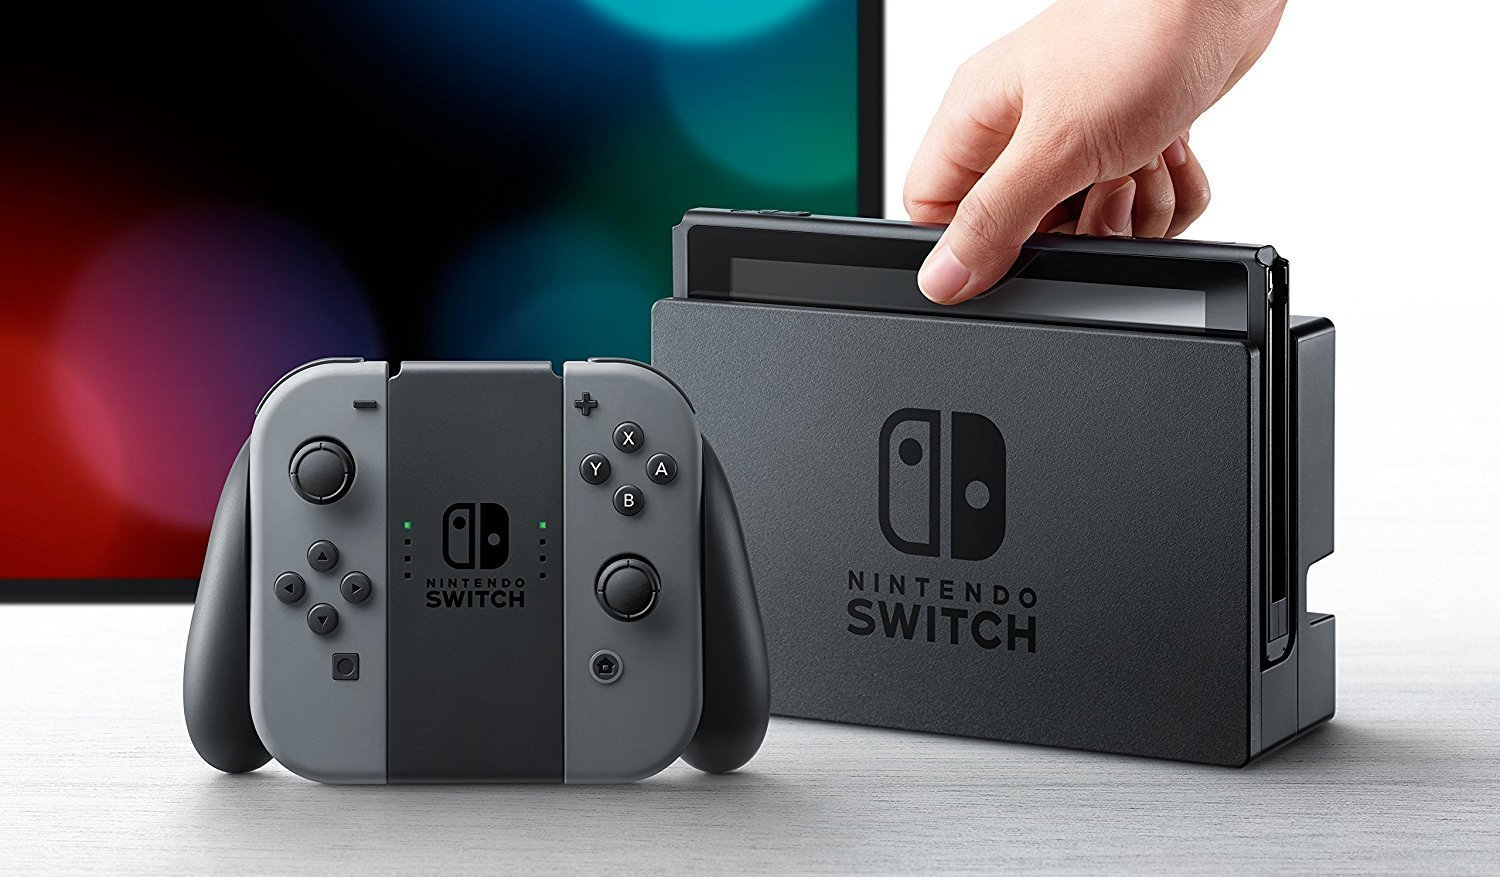 Nintendo is upgrading the Switch with new (and probably better) components screenshot